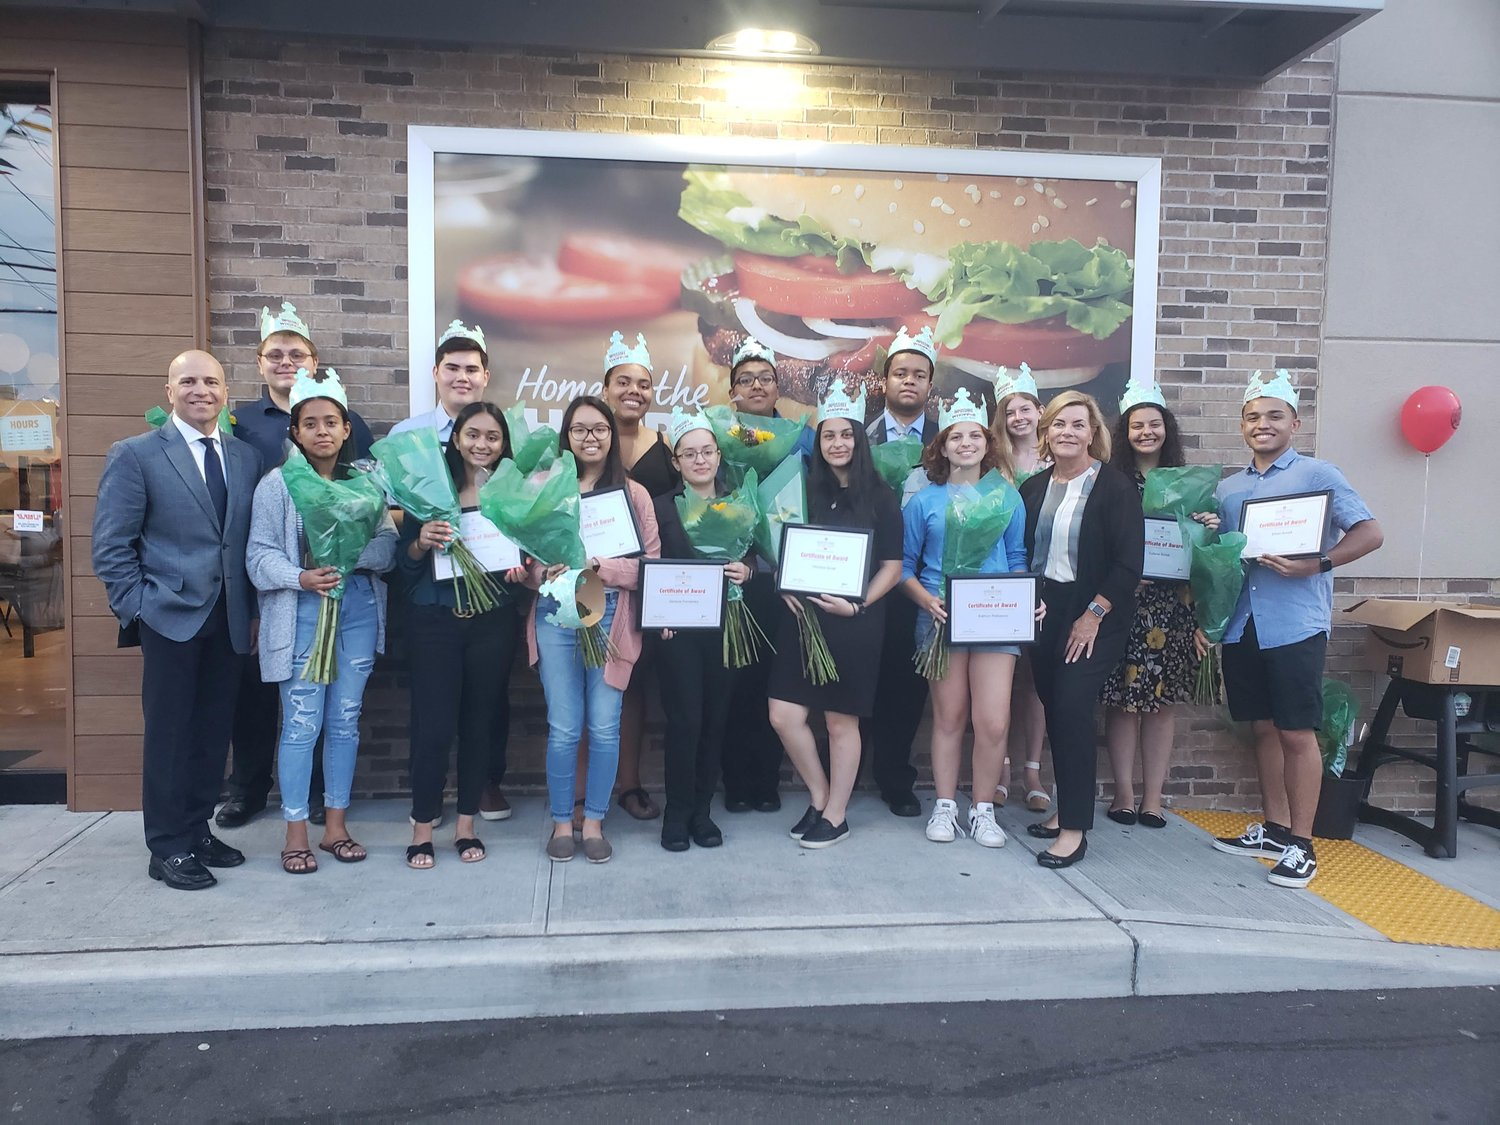 Nassau County Burger King's McLamore Scholarship recipients were awarded $1000 to go towards their college expenses on Aug. 2 at the Freeport location on East Merrick Road.